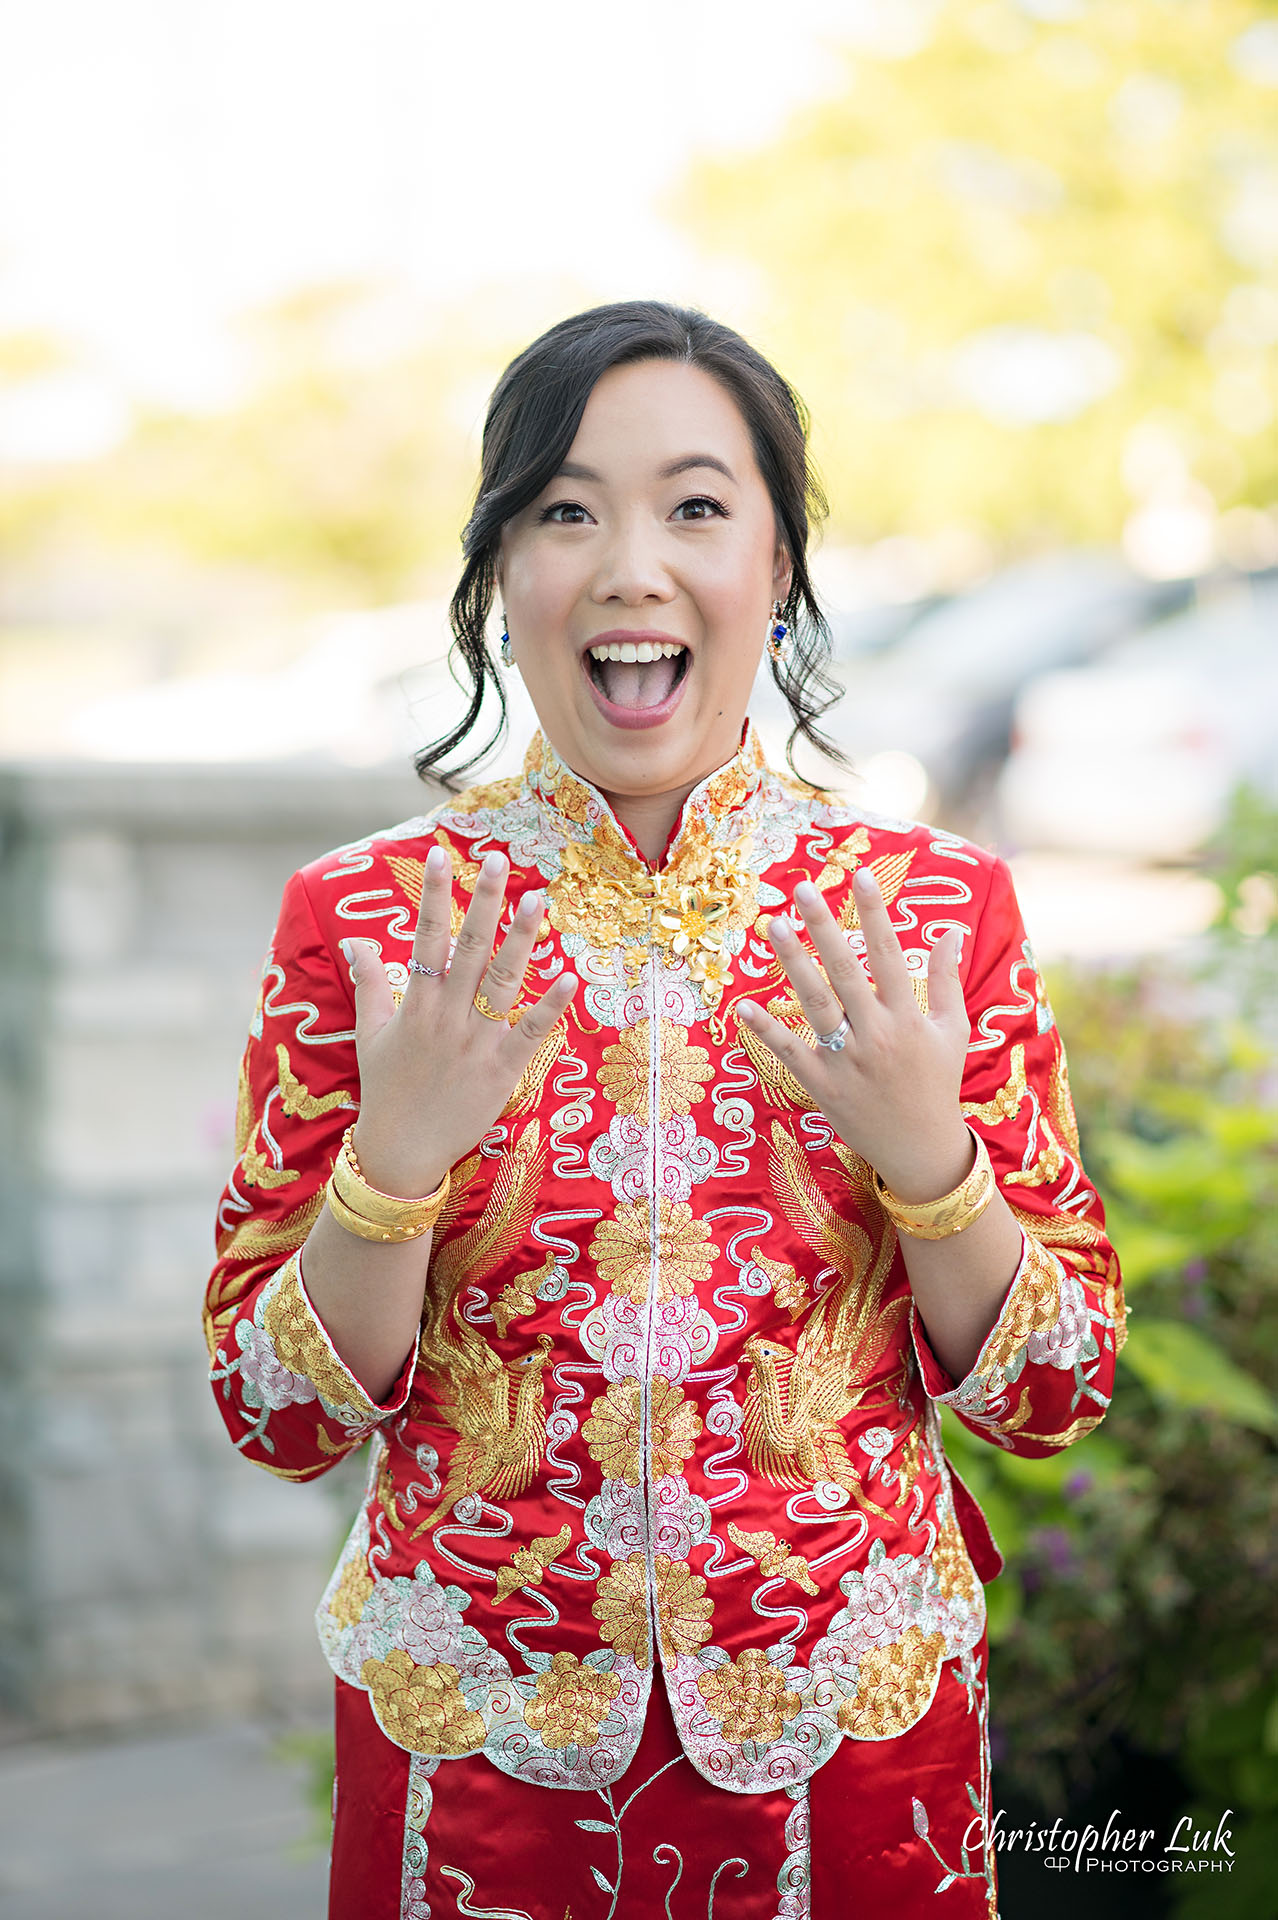 Christopher Luk Toronto Wedding Photographer Bridle Trail Baptist Church Unionville Main Street Crystal Fountain Event Venue Bride Groom Natural Photojournalistic Candid Chinese Tea Ceremony Cheongsam Qipao Kua Qua Gold Jewelry Jewellery Necklace Bracelet Rings Funny Face Smile